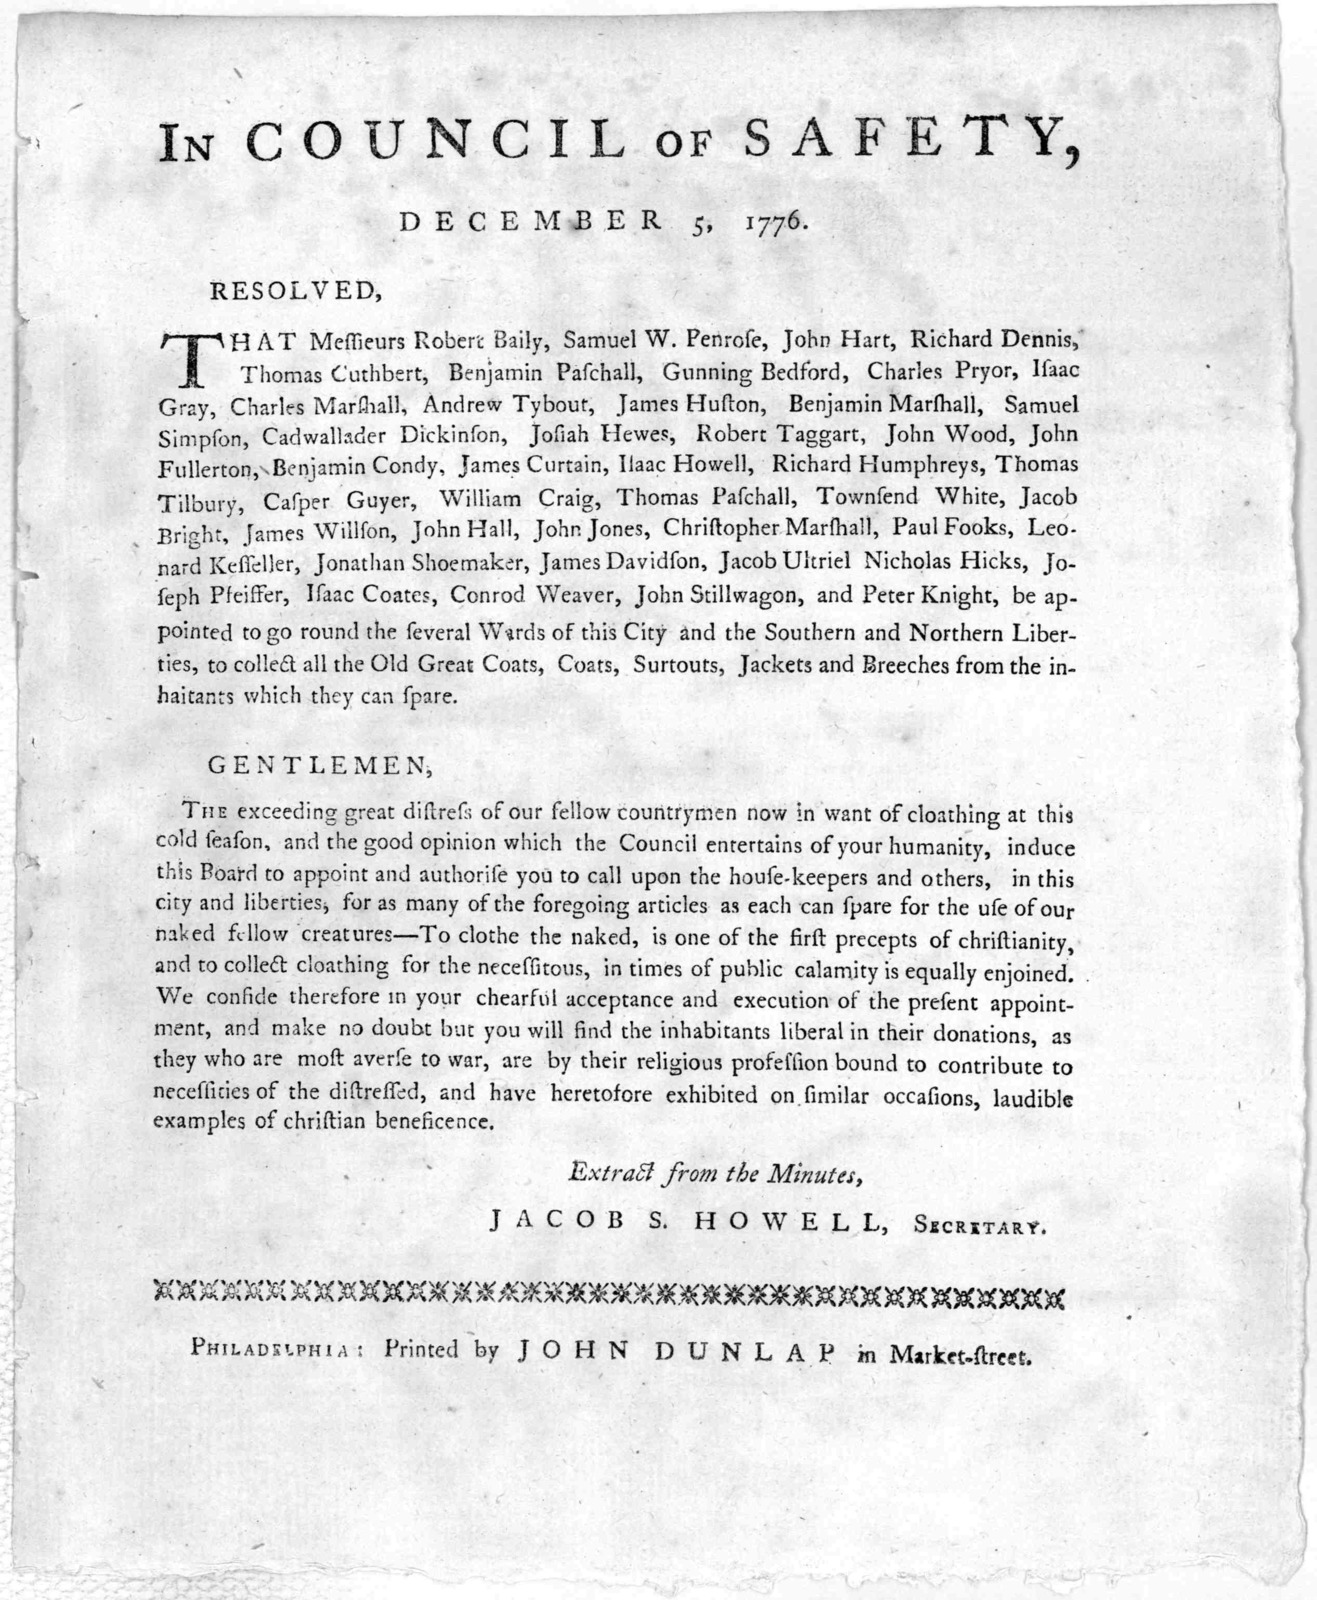 In Council of Safety. December 5, 1776. Resolved that Messieurs Robert Bailey [and 42 others] be appointed to go round the several ward of this City and the Southern and Northern liberties, to collect all the Old Great Coats, coats, surtouts, Ja